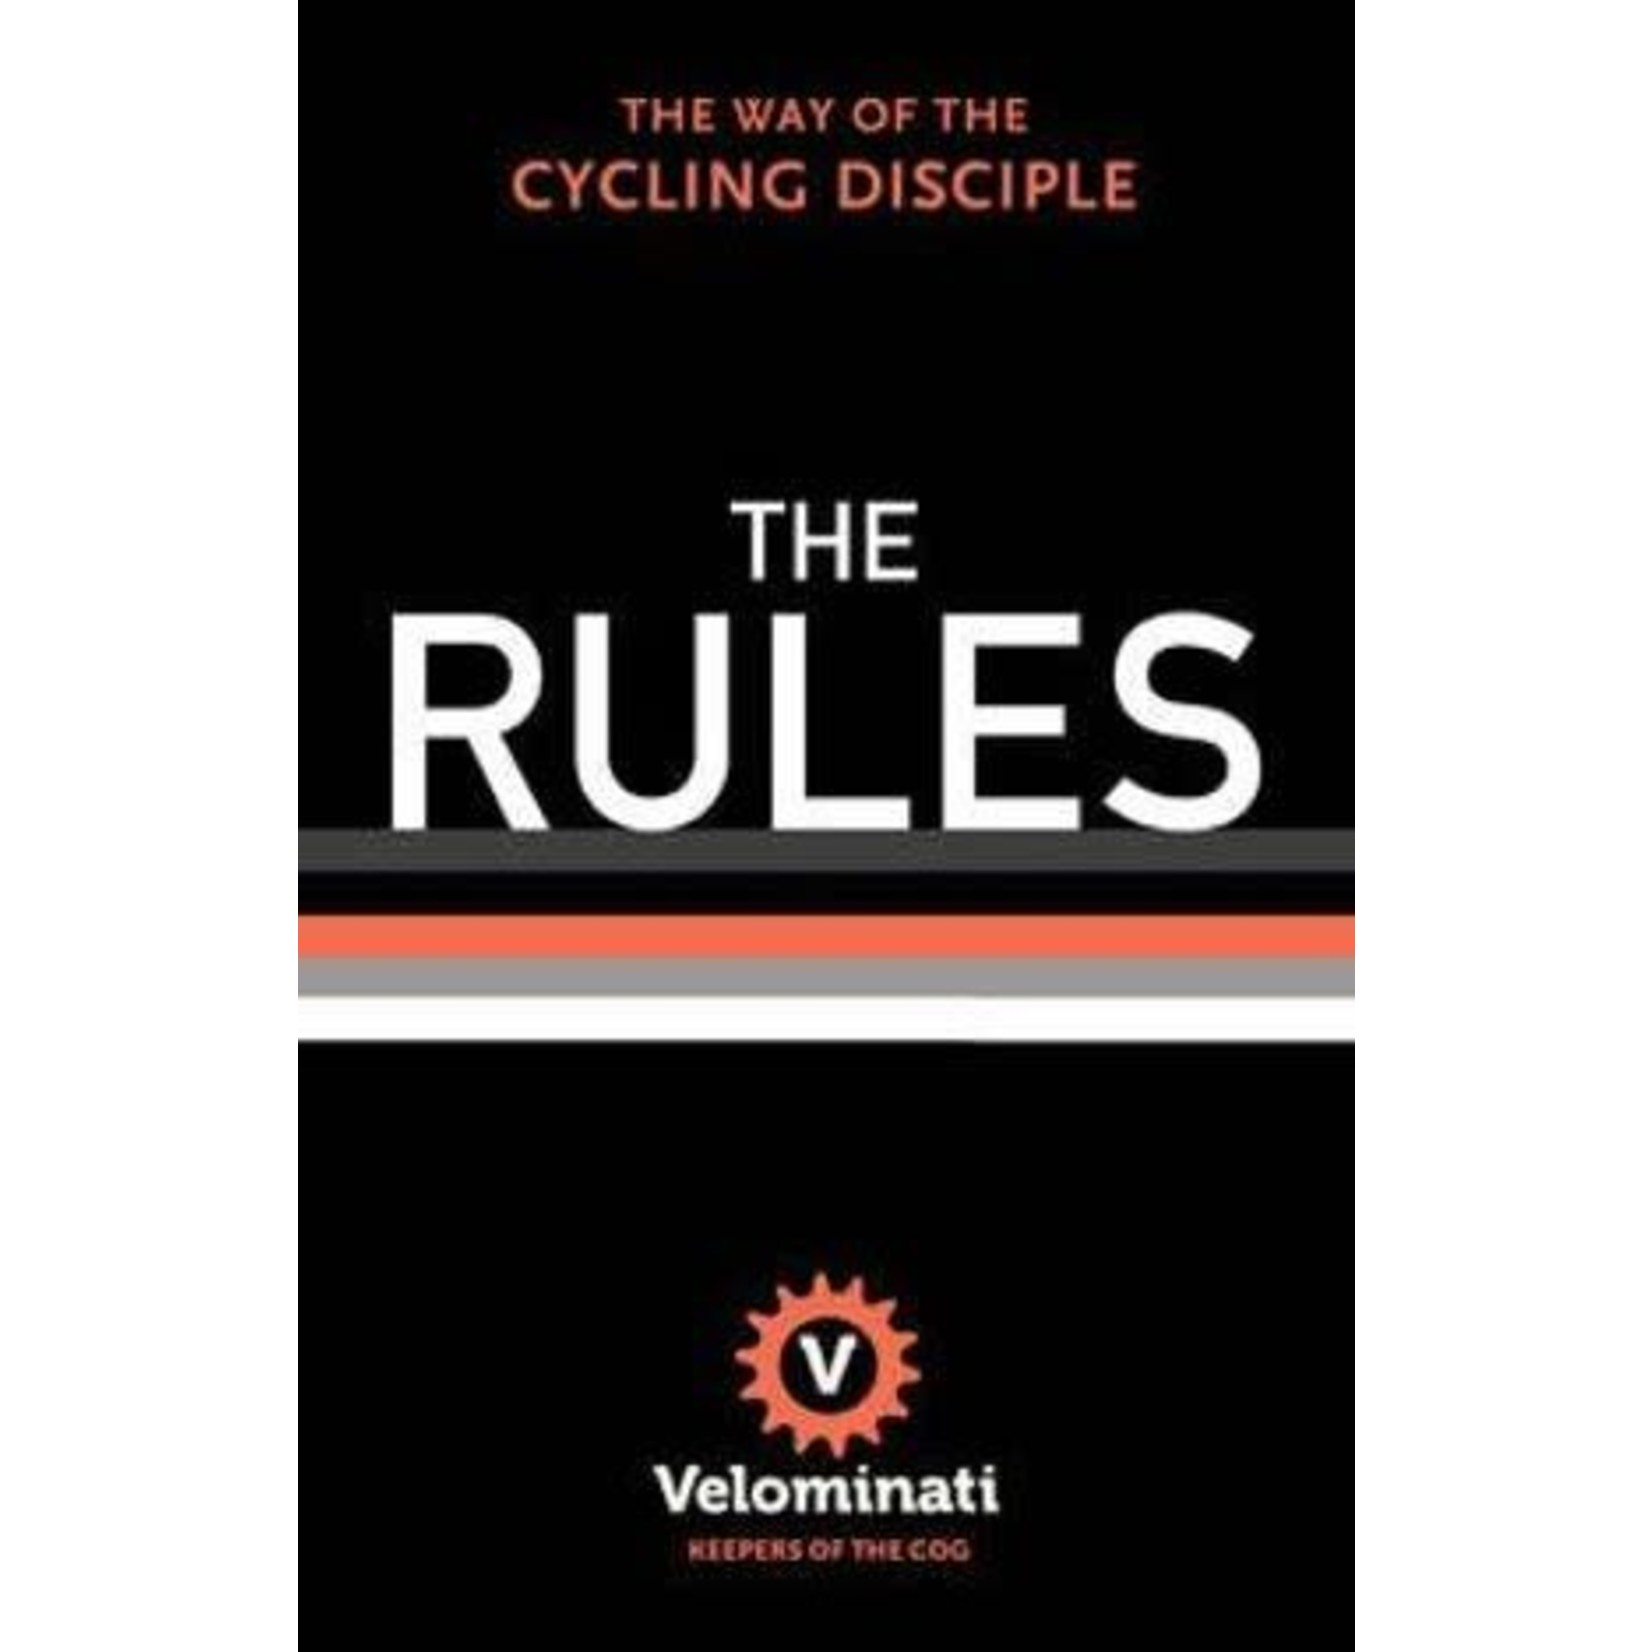 The Rules- The Way of the Cycling Disciple By: The Velominati hardcover